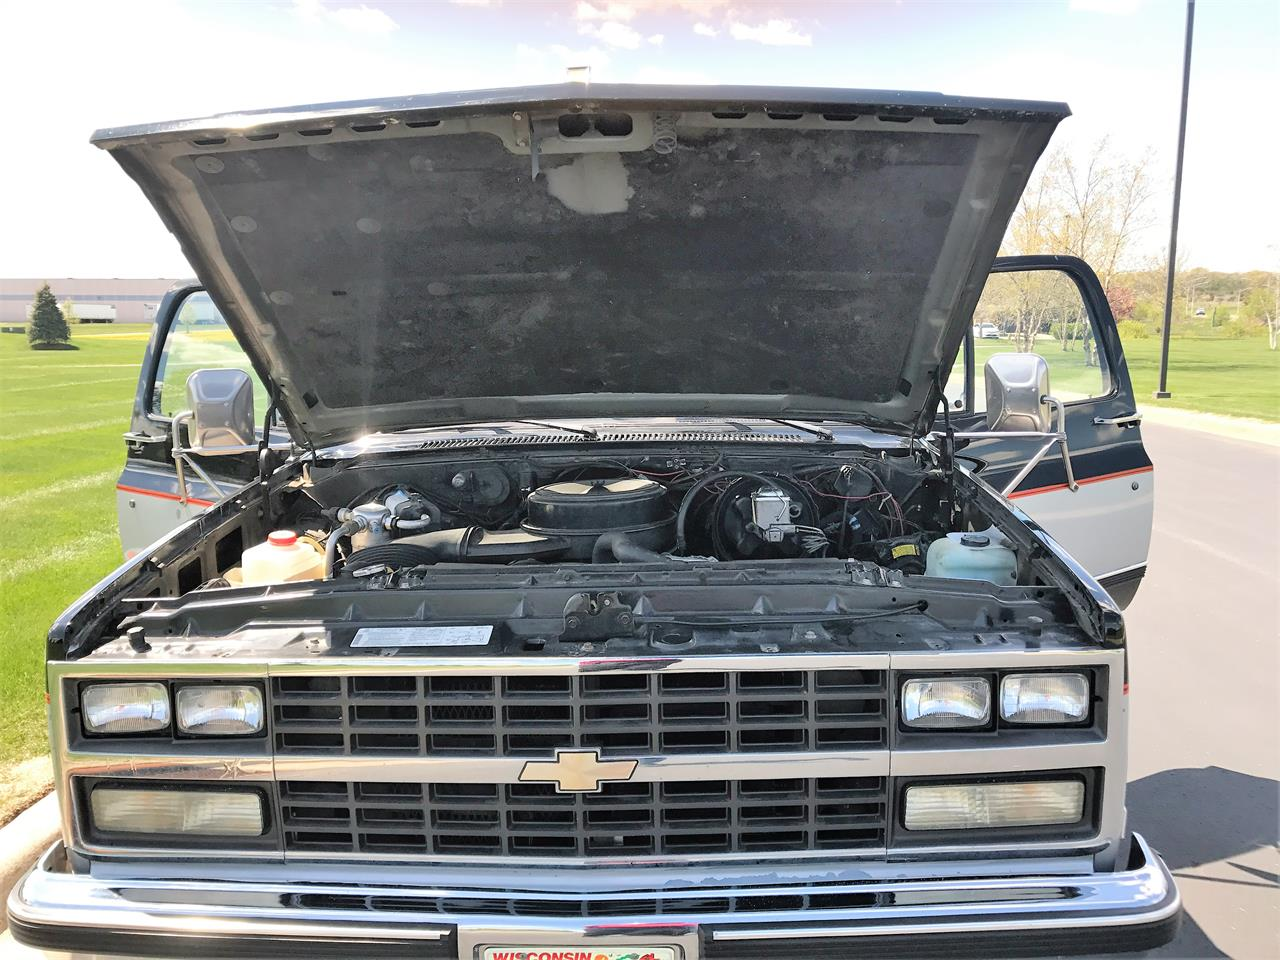 Large Picture of 1989 Chevrolet Suburban located in Wisconsin - $8,500.00 Offered by a Private Seller - LHN1